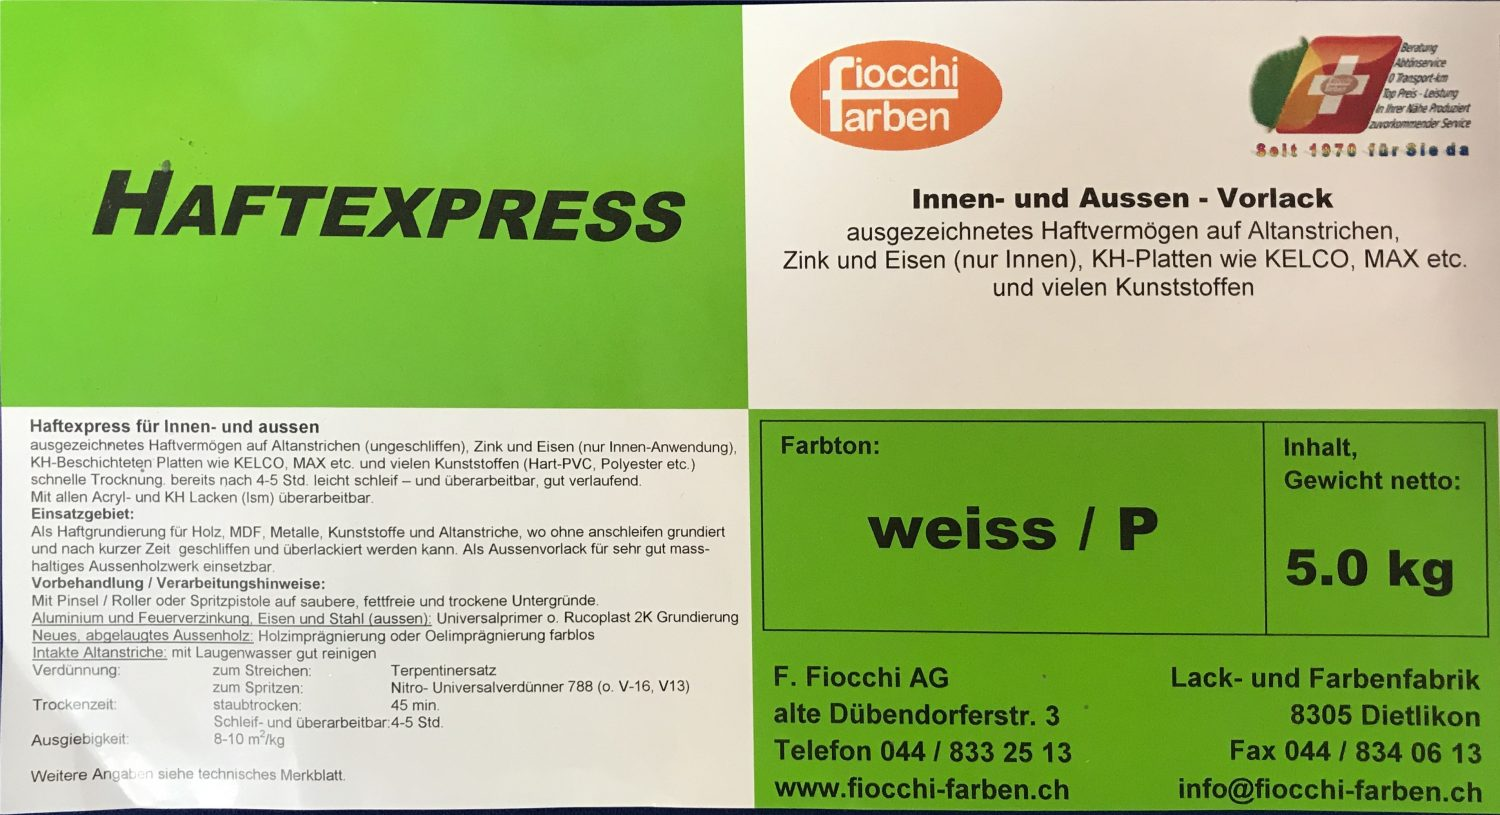 Haftexpress